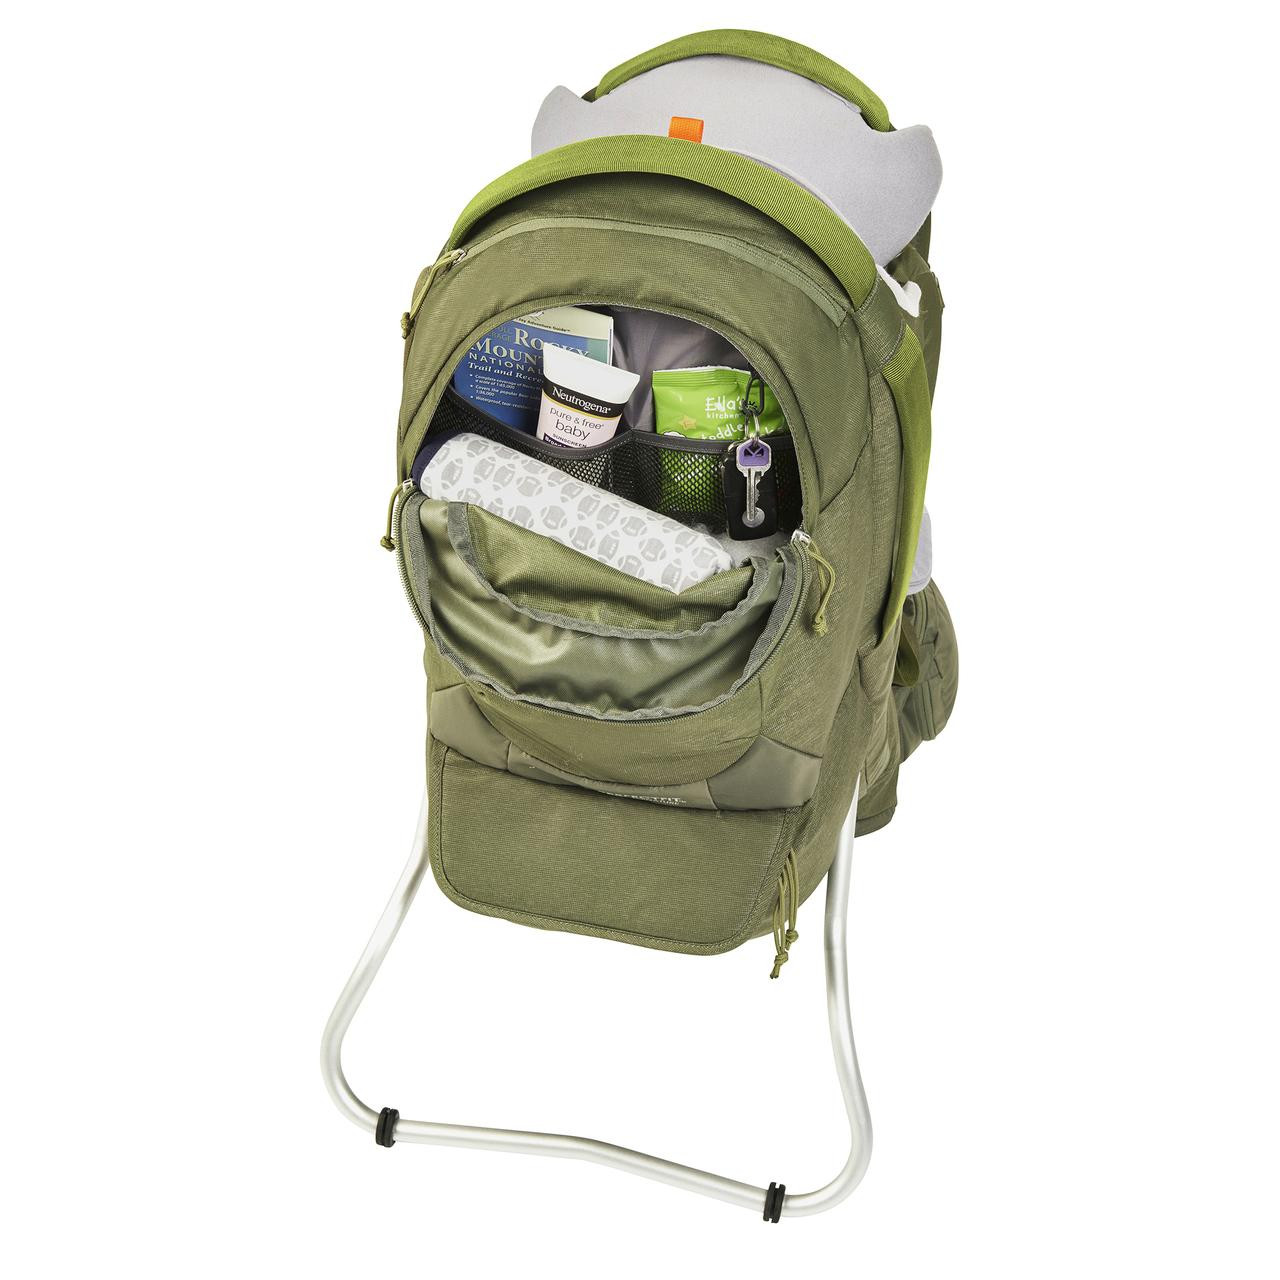 Kelty Journey PerfectFIT Signature child carrier backpack, Moss Green, front view, with upper storage compartment unzipped